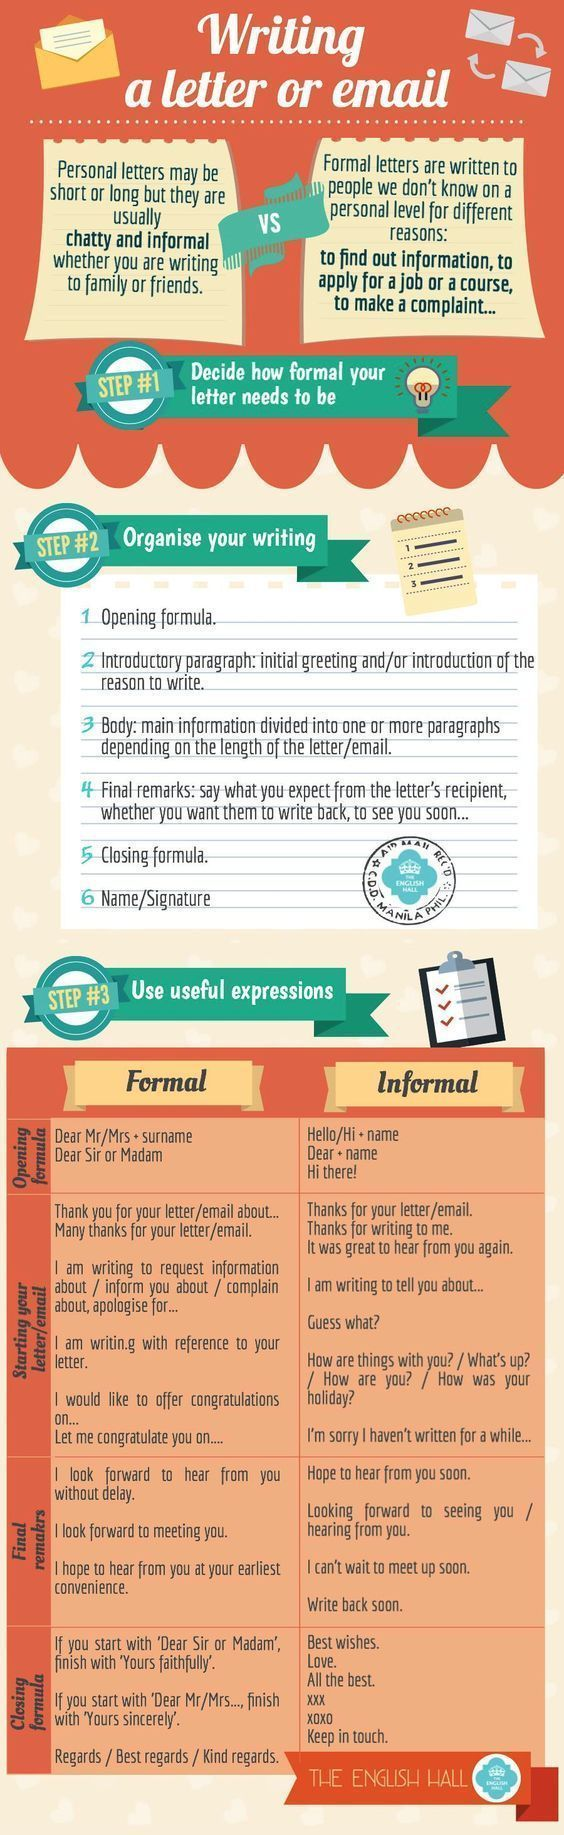 Formal_Informal_English (Formal Writing Expressions) (Formal letter Practice) (For and Against essay) (how to write a film review) (film review) (film review) (opinion essay) (a magazine article) … #FilmSchoolsReview